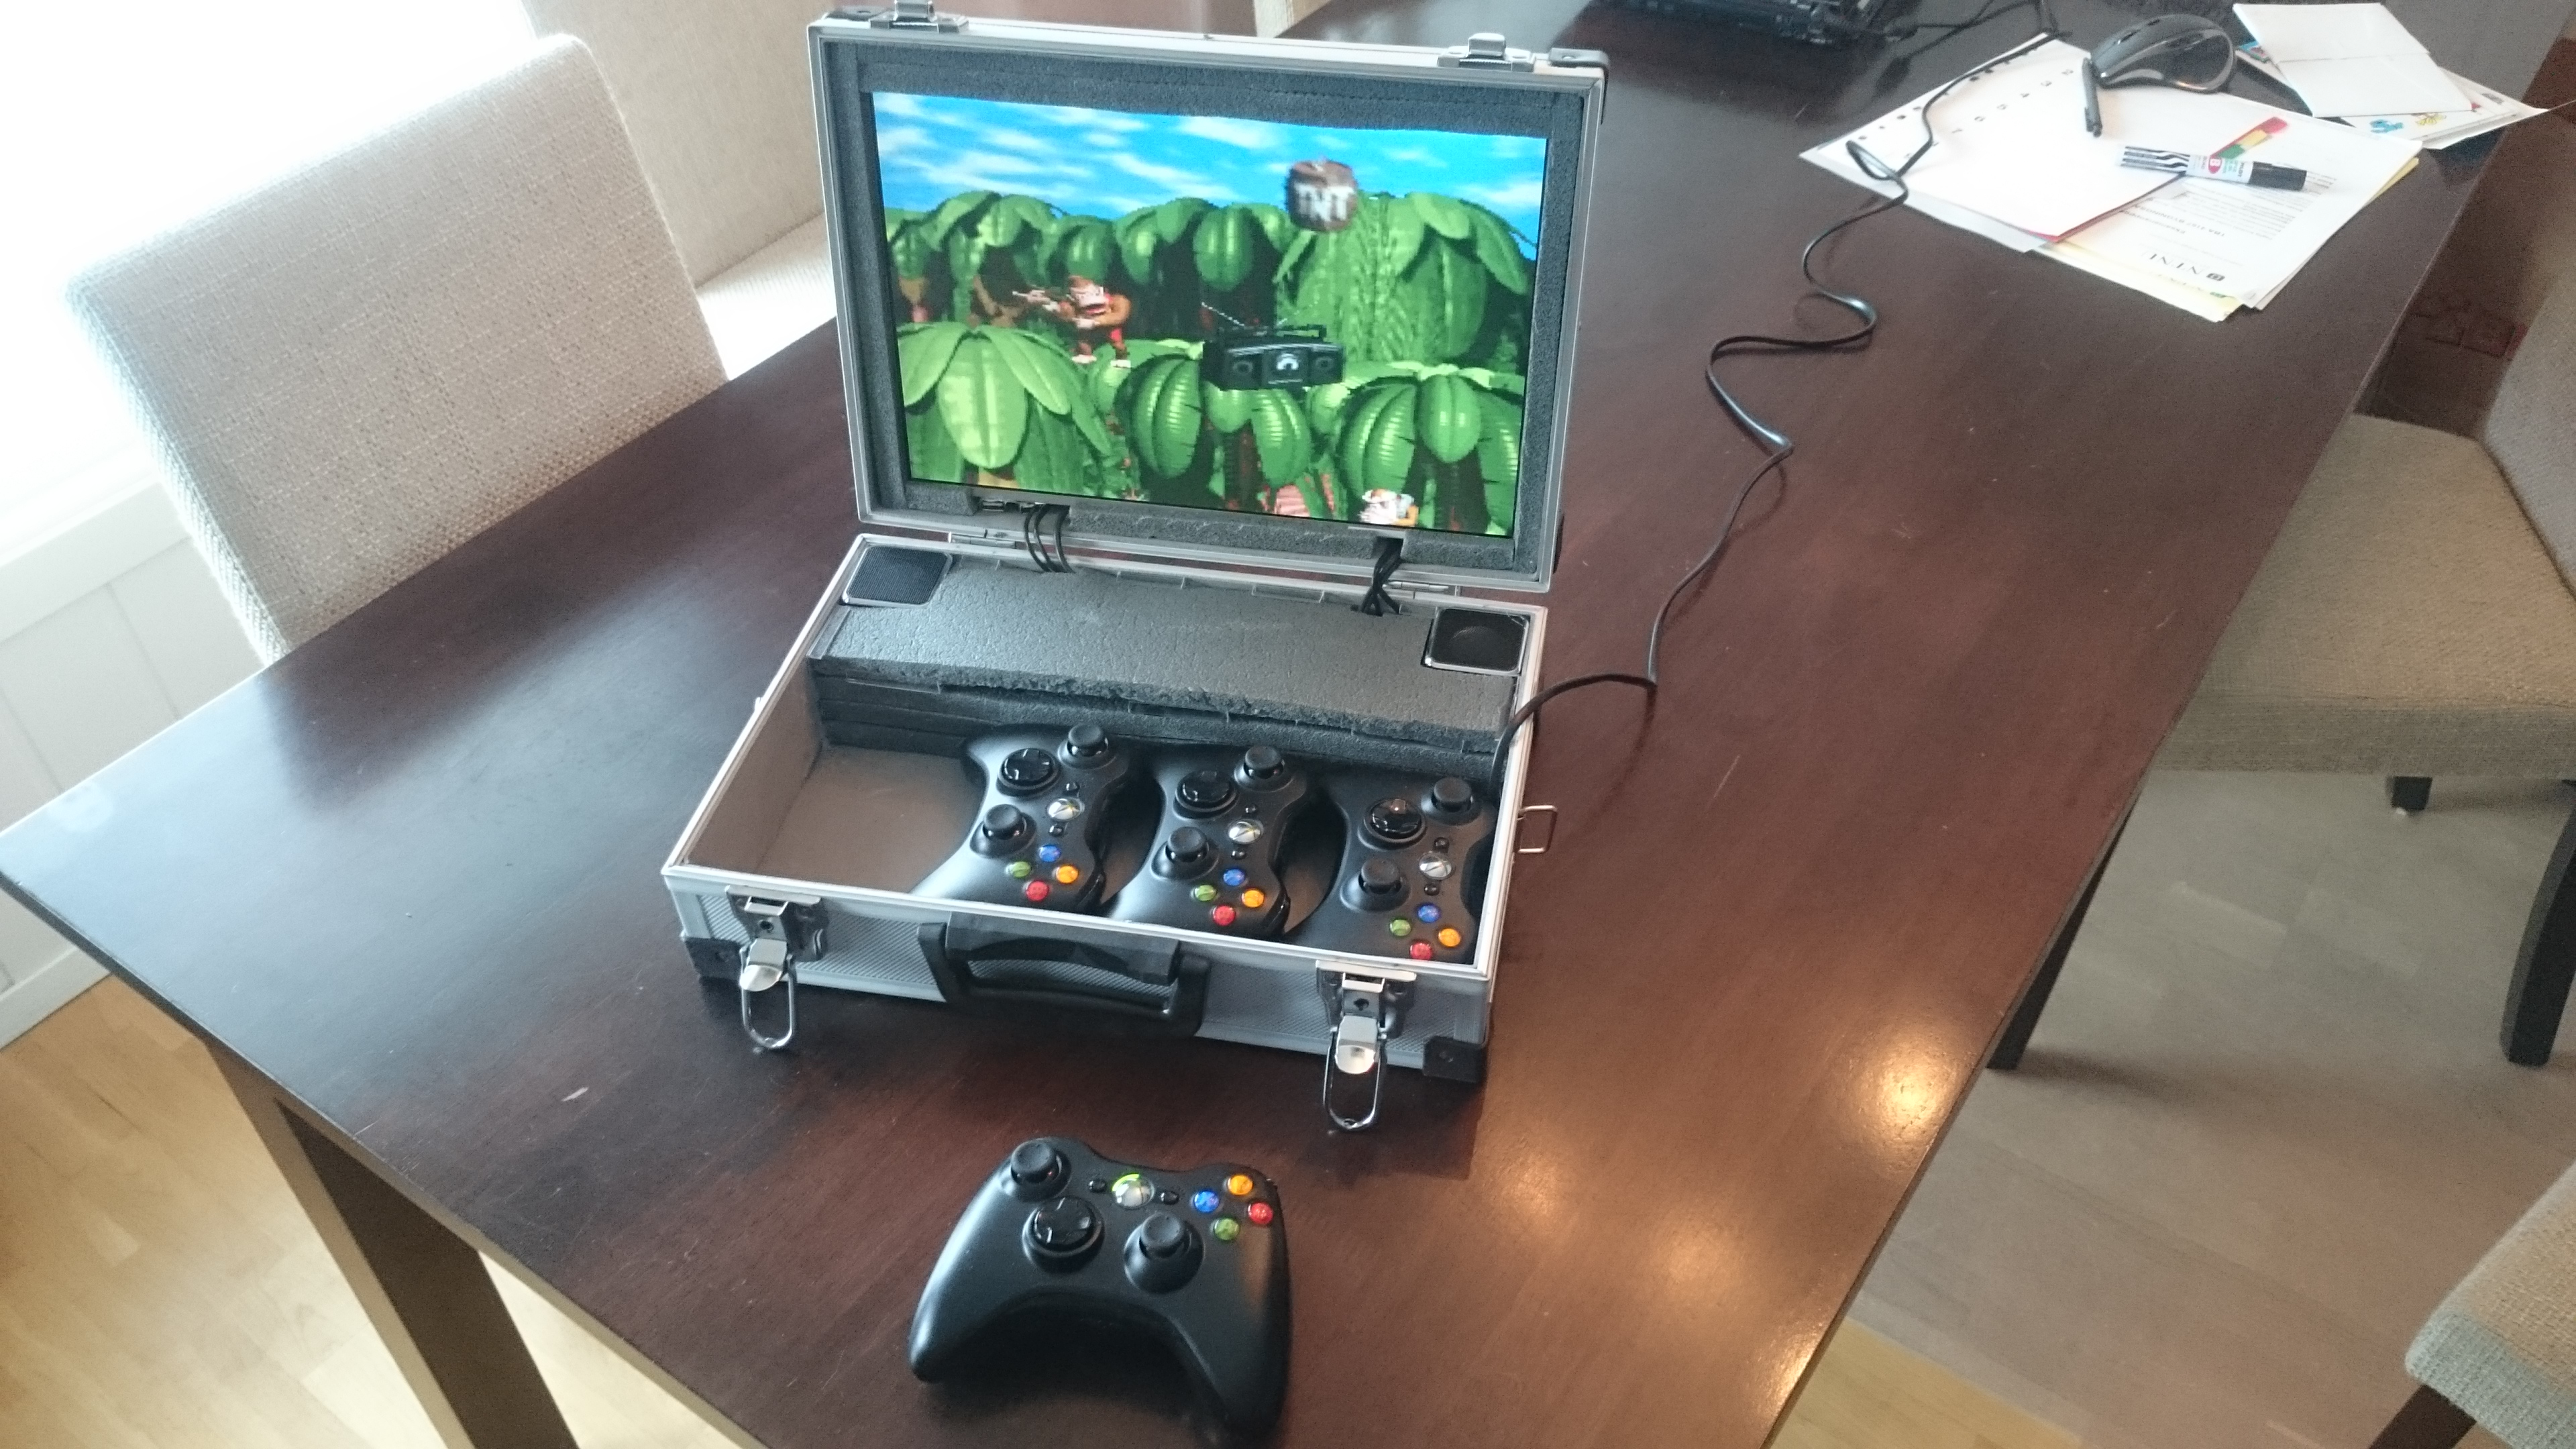 Portable RetroPie Suitcase For Multiplayer On The Go! | Hackaday